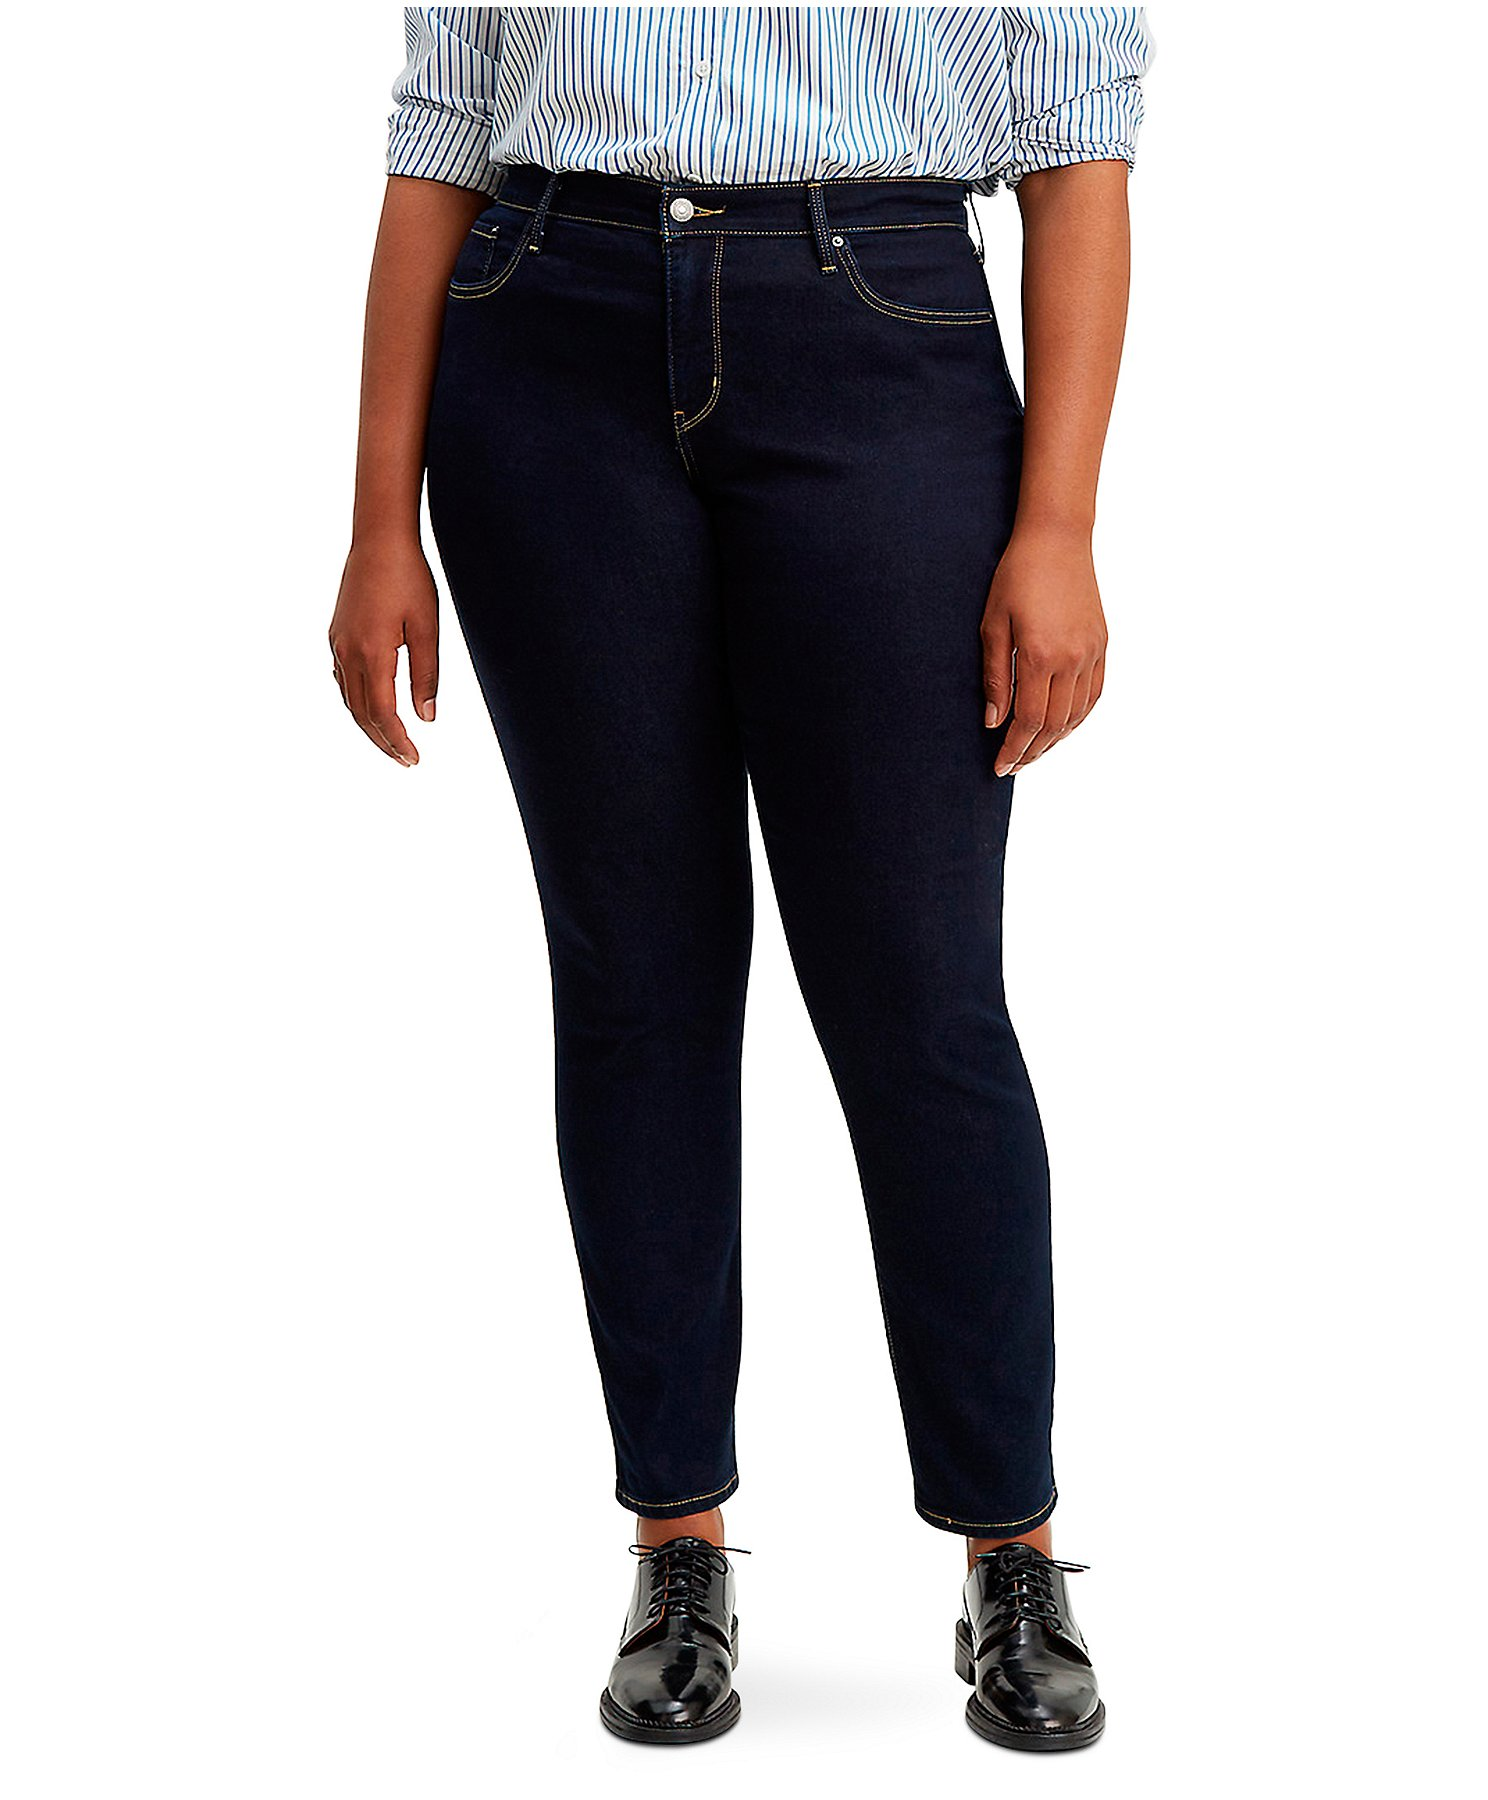 Women's 311 Shaping Skinny Jeans - Plus Size | Mark's